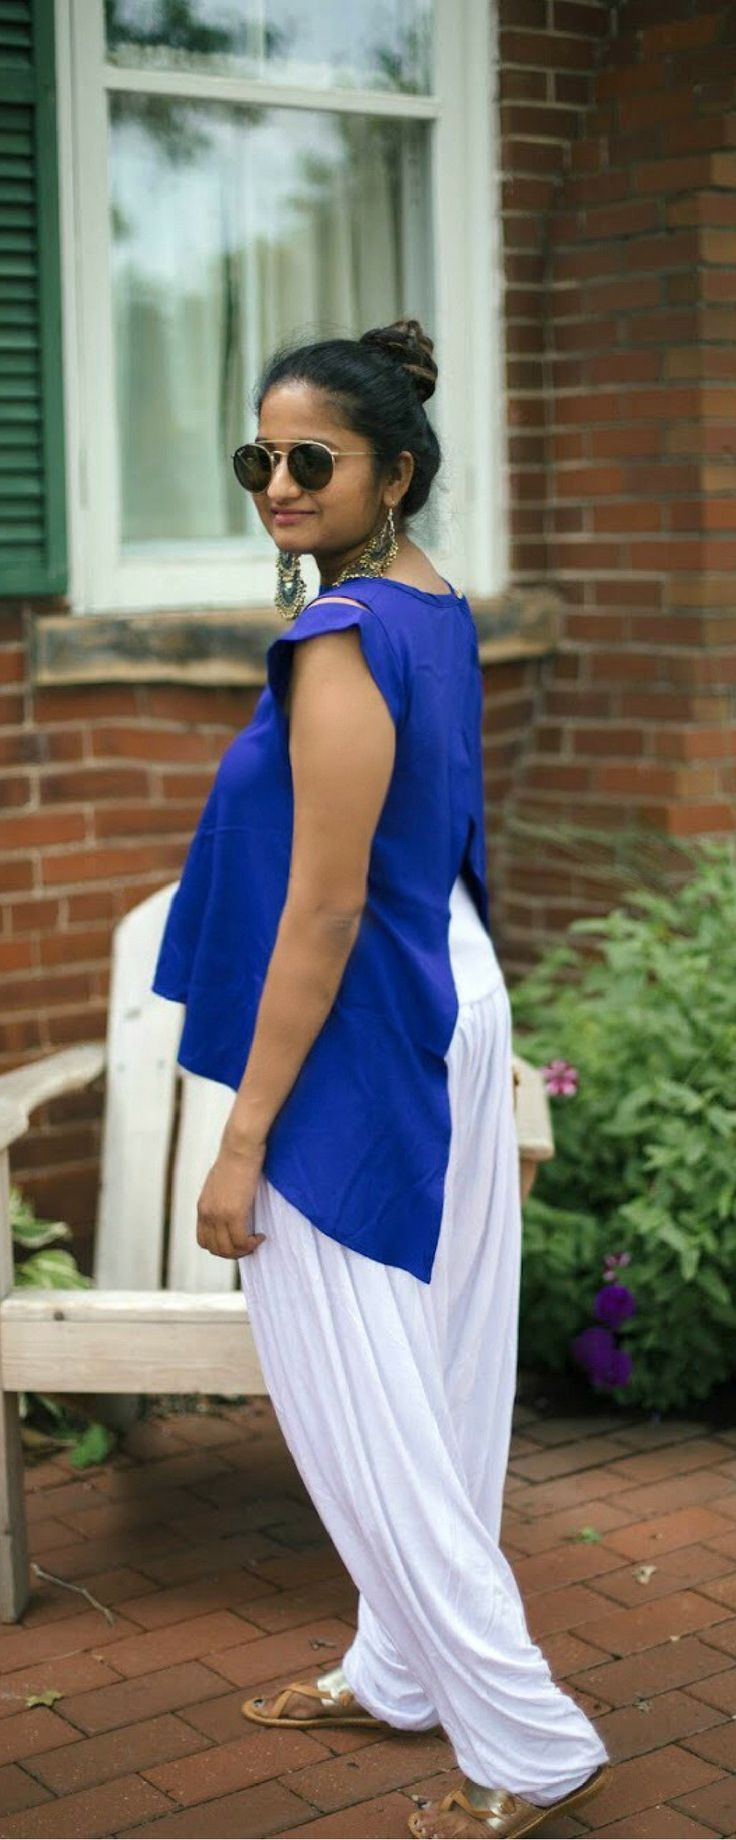 Tunic with Patiala/Harem pant | dreamingloud.com --------- make me chic split back top, white patiala pant, white and blue, Indian independence day outfit, chandbali earrings, soludos | #TheOilyAnalyst #LifestyleBlogger #AnimalAdvocate #StarWars #EssentialOils #SeekerofLaughter #BloggingAdvice #BloggingHelp #Budgeting #Debt #MakeMoney #PetCare #YoungLivingEssentialOils #YLEO #Funny #Comedy | theoilyanalyst.com